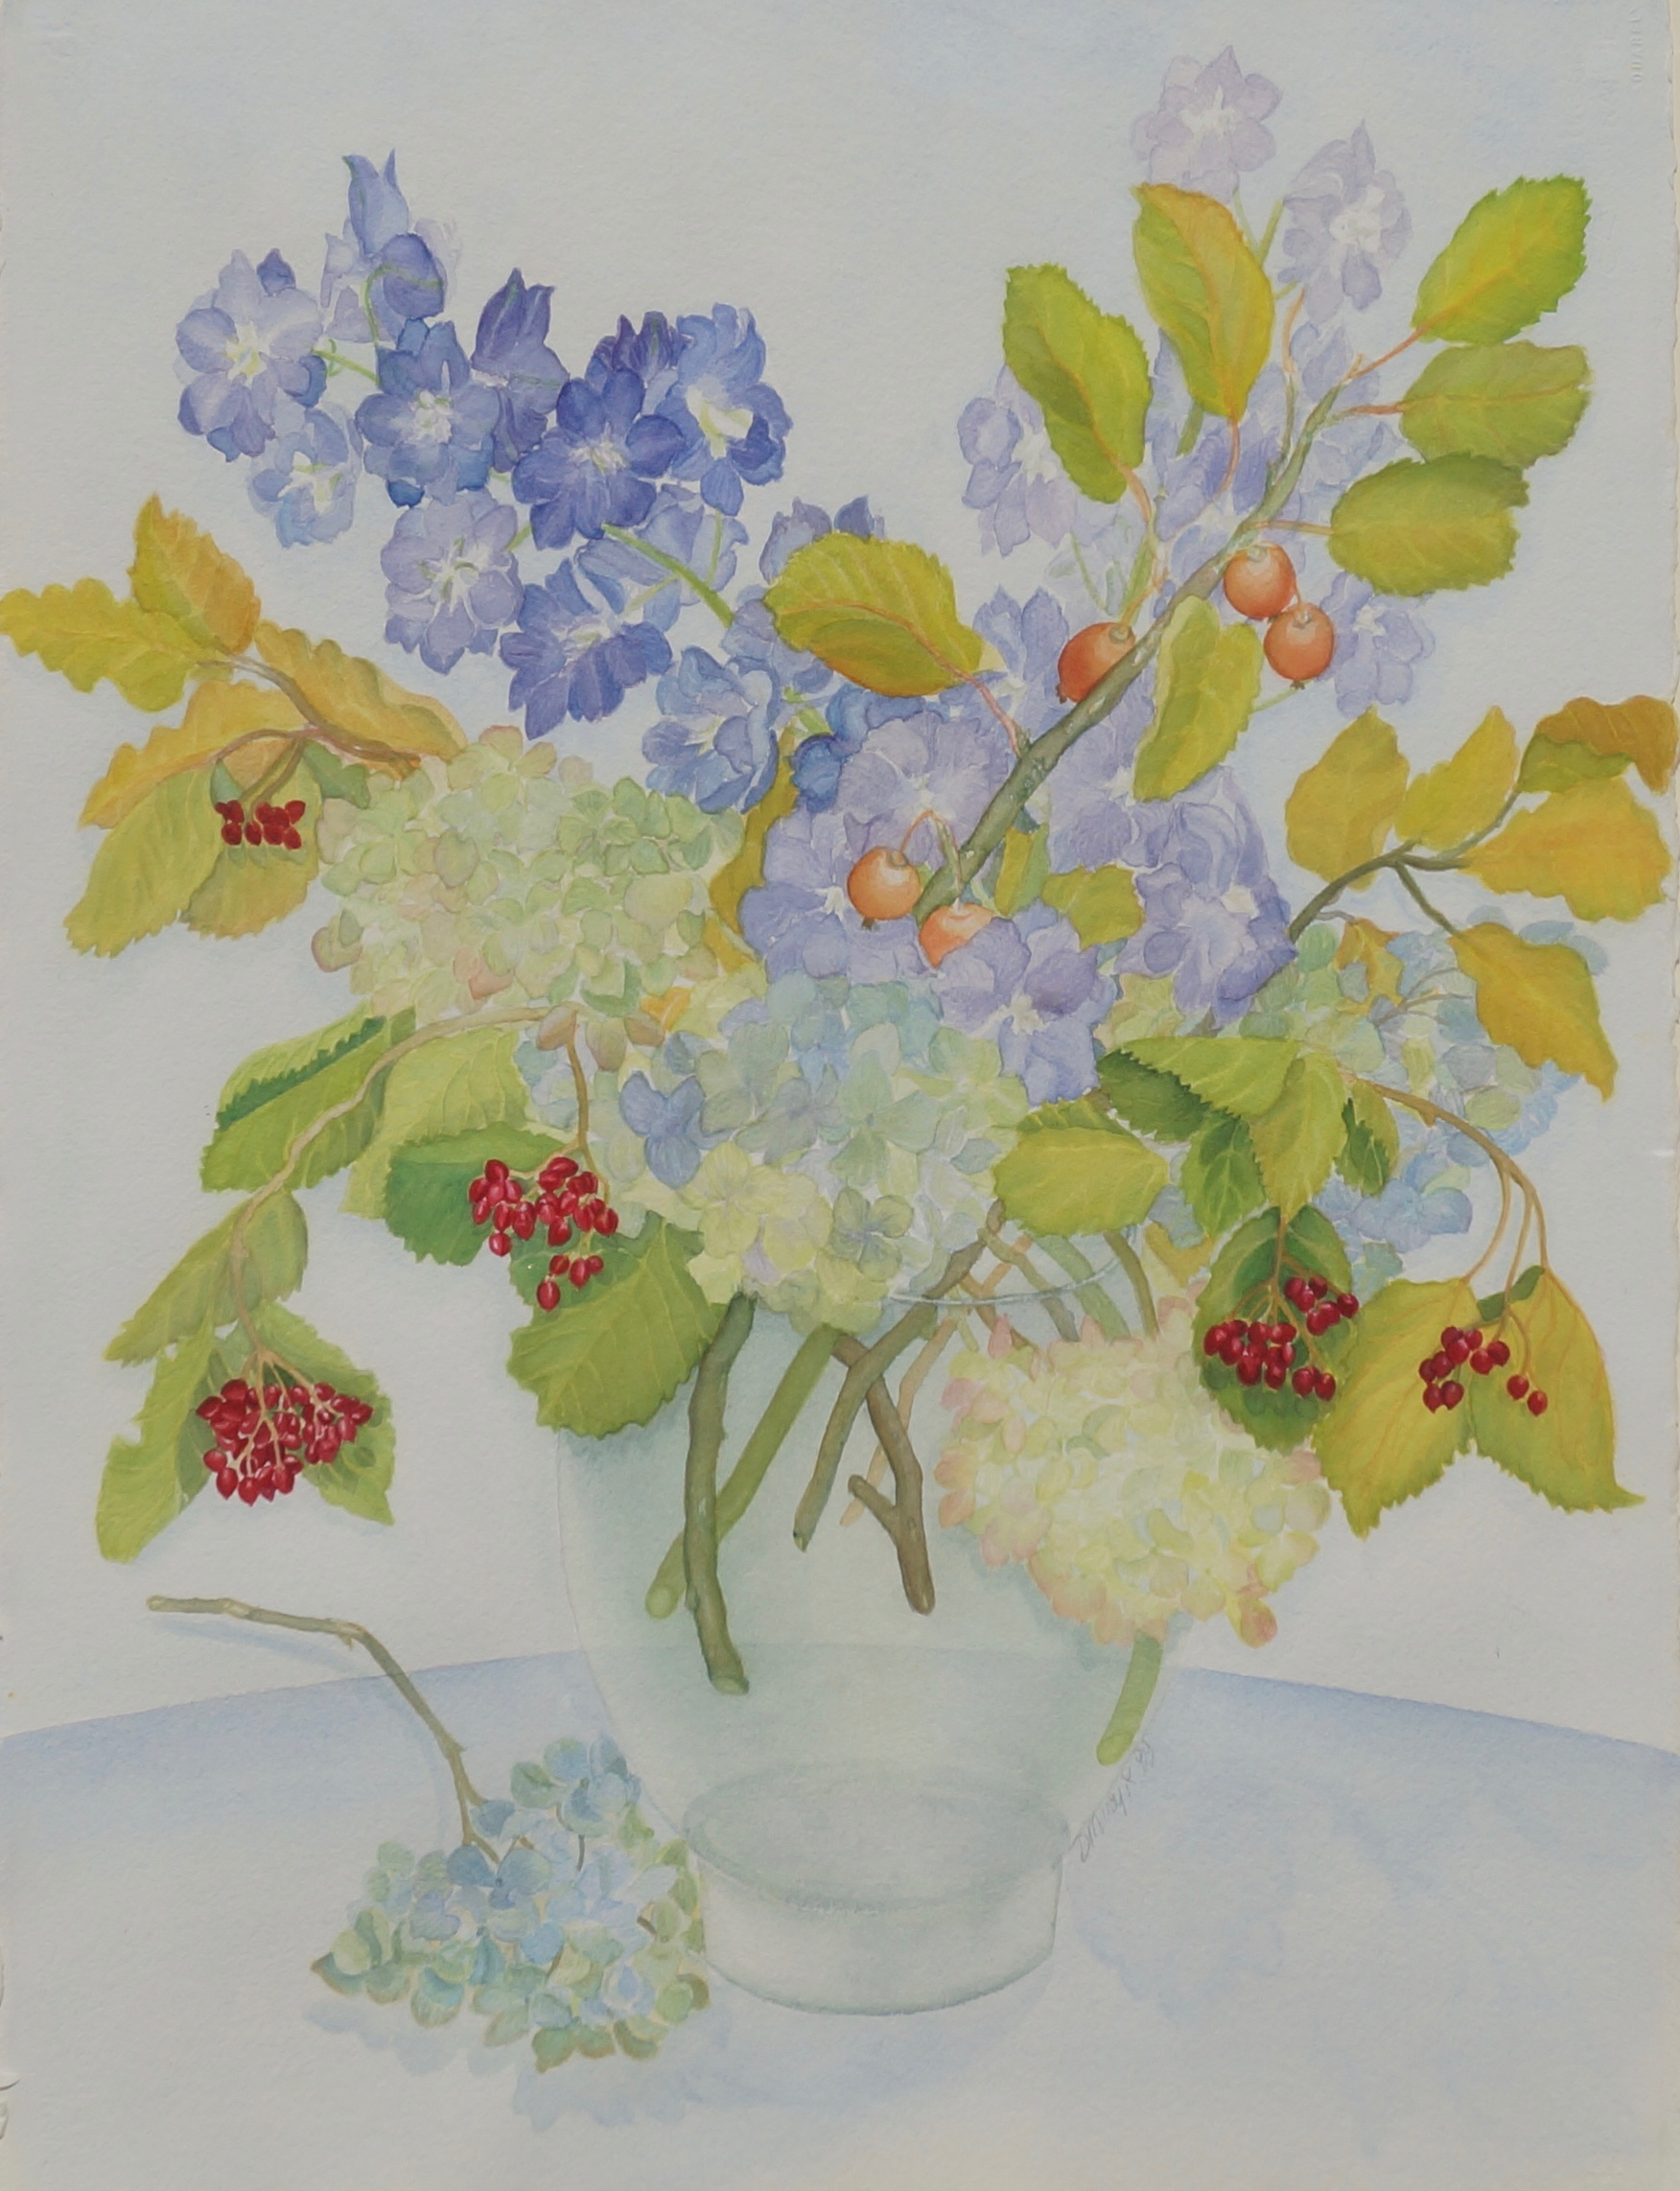 Delphiniums and Viburnum